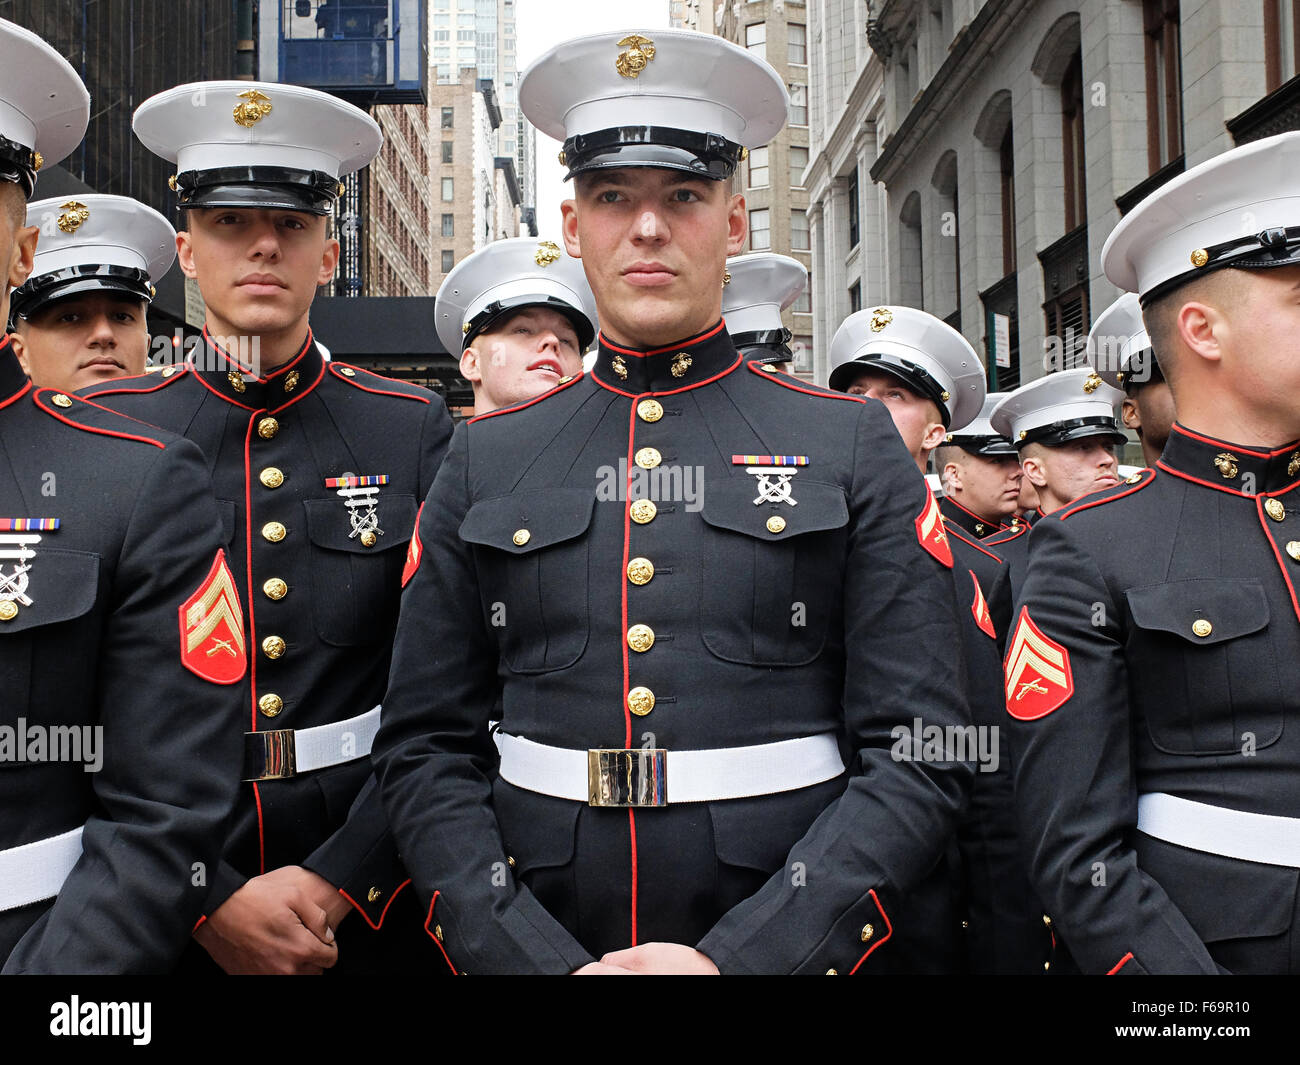 A group of United States Marines in uniform prior to the 2015 Veteran's Day parade in New York City - Stock Image